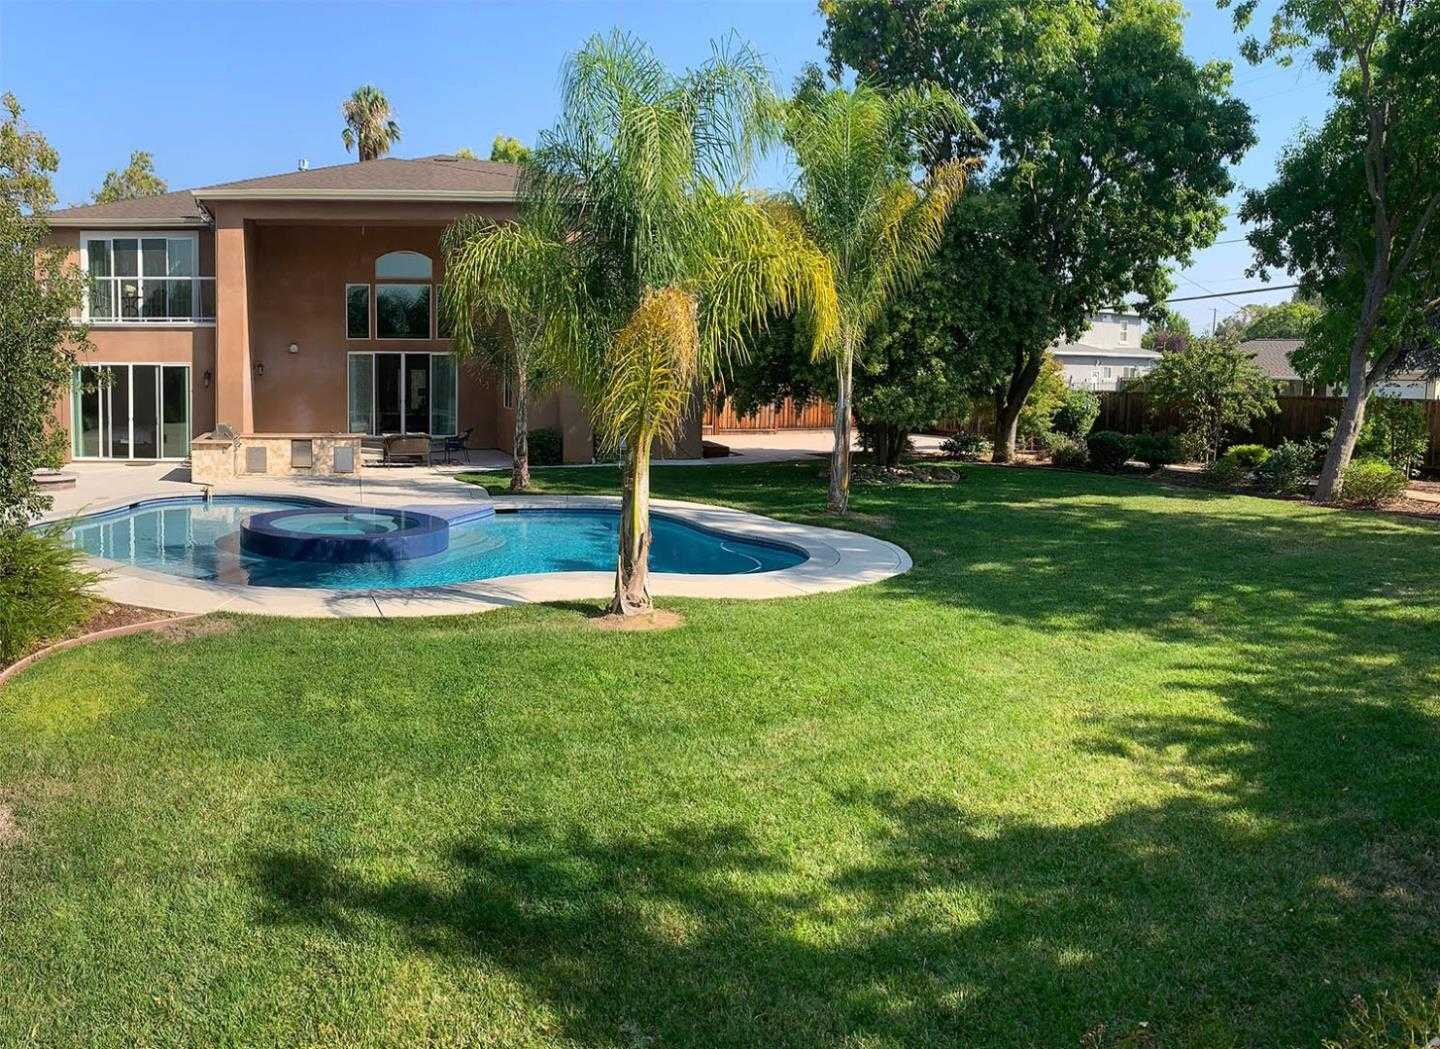 $2,980,000 - 5Br/5Ba -  for Sale in San Jose